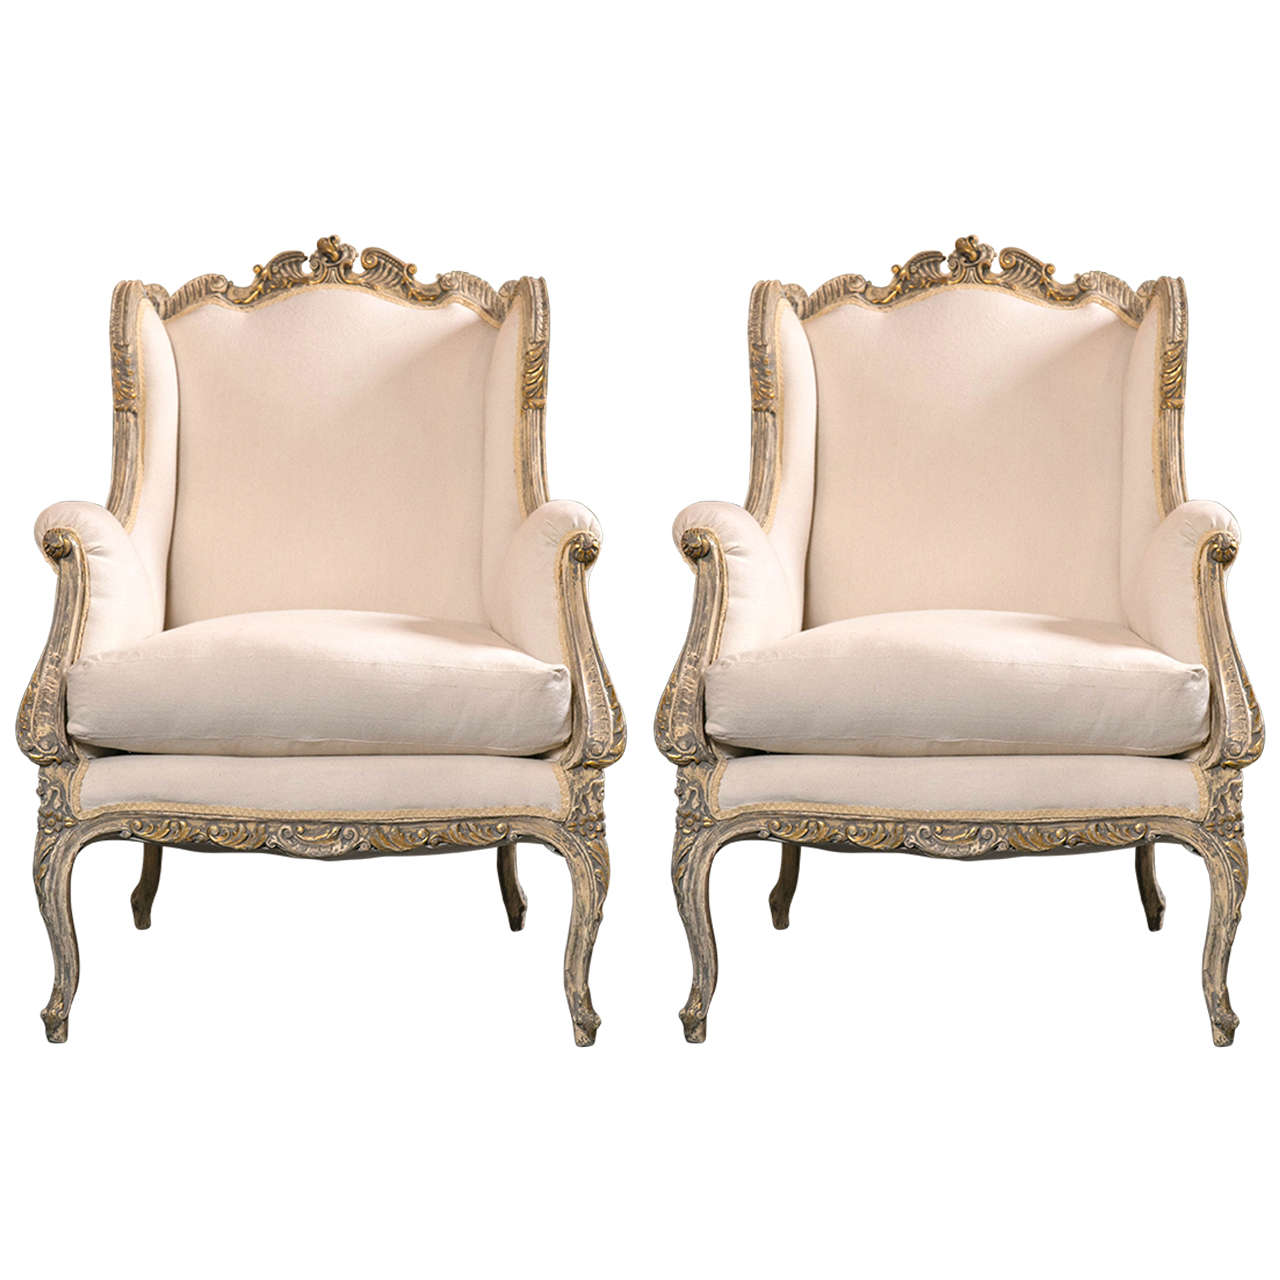 Pair of french rococo style wingback berg re chairs at 1stdibs for French rococo style